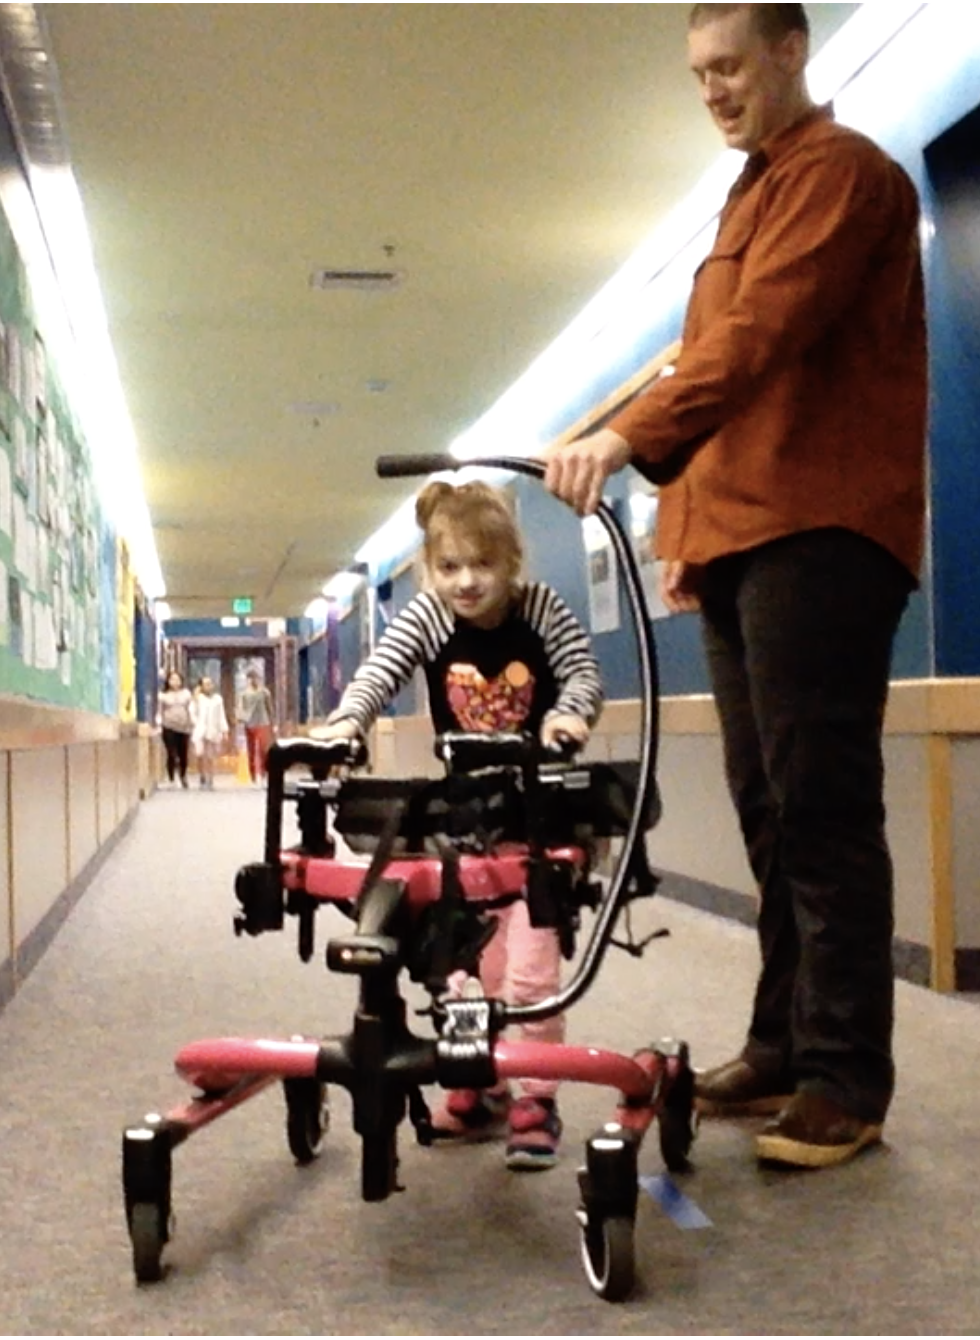 A young girl is learning how to walk with special equipment and a teacher.